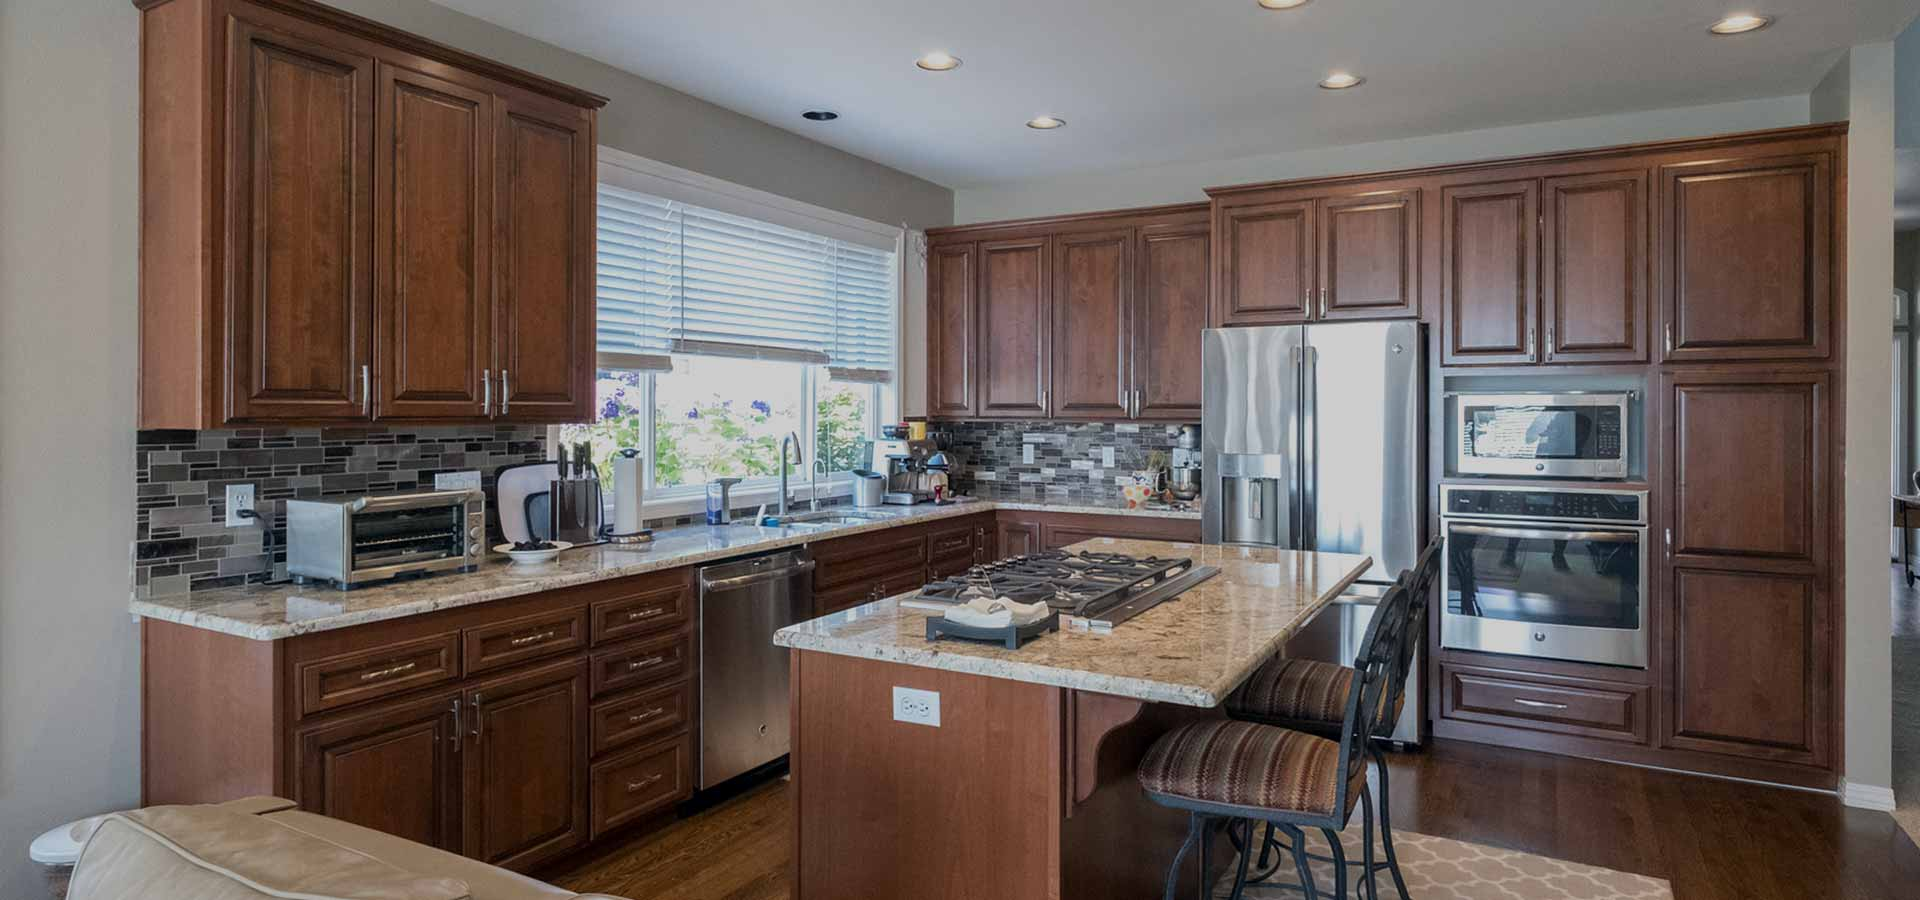 Cabinet Refacing Outside The Box